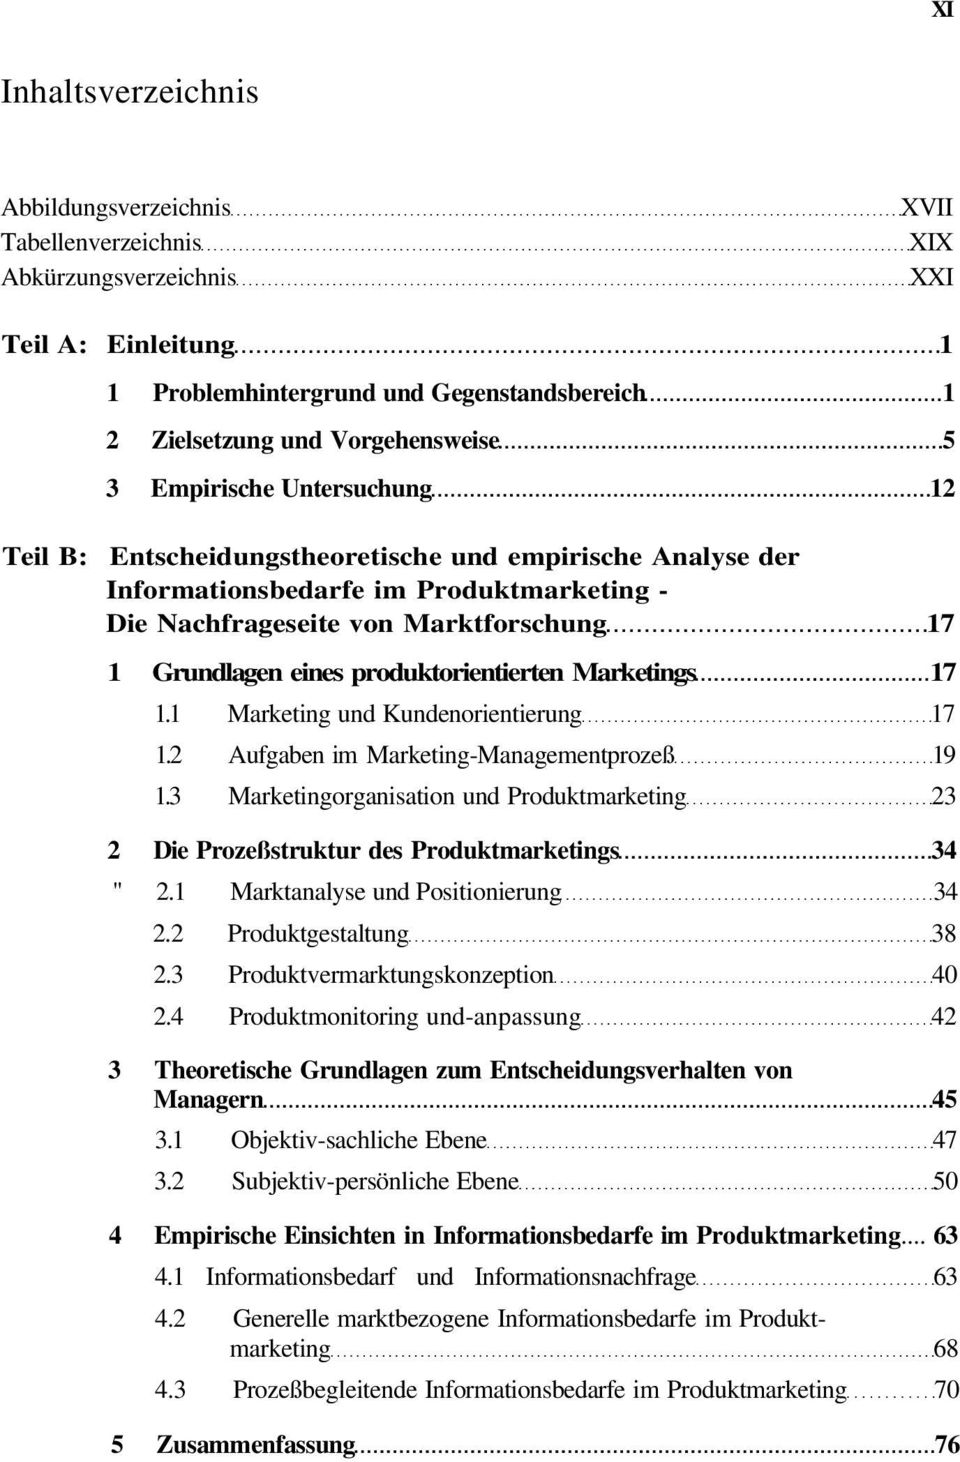 produktorientierten Marketings 17 1.1 Marketing und Kundenorientierung 17 1.2 Aufgaben im Marketing-Managementprozeß 19 1.